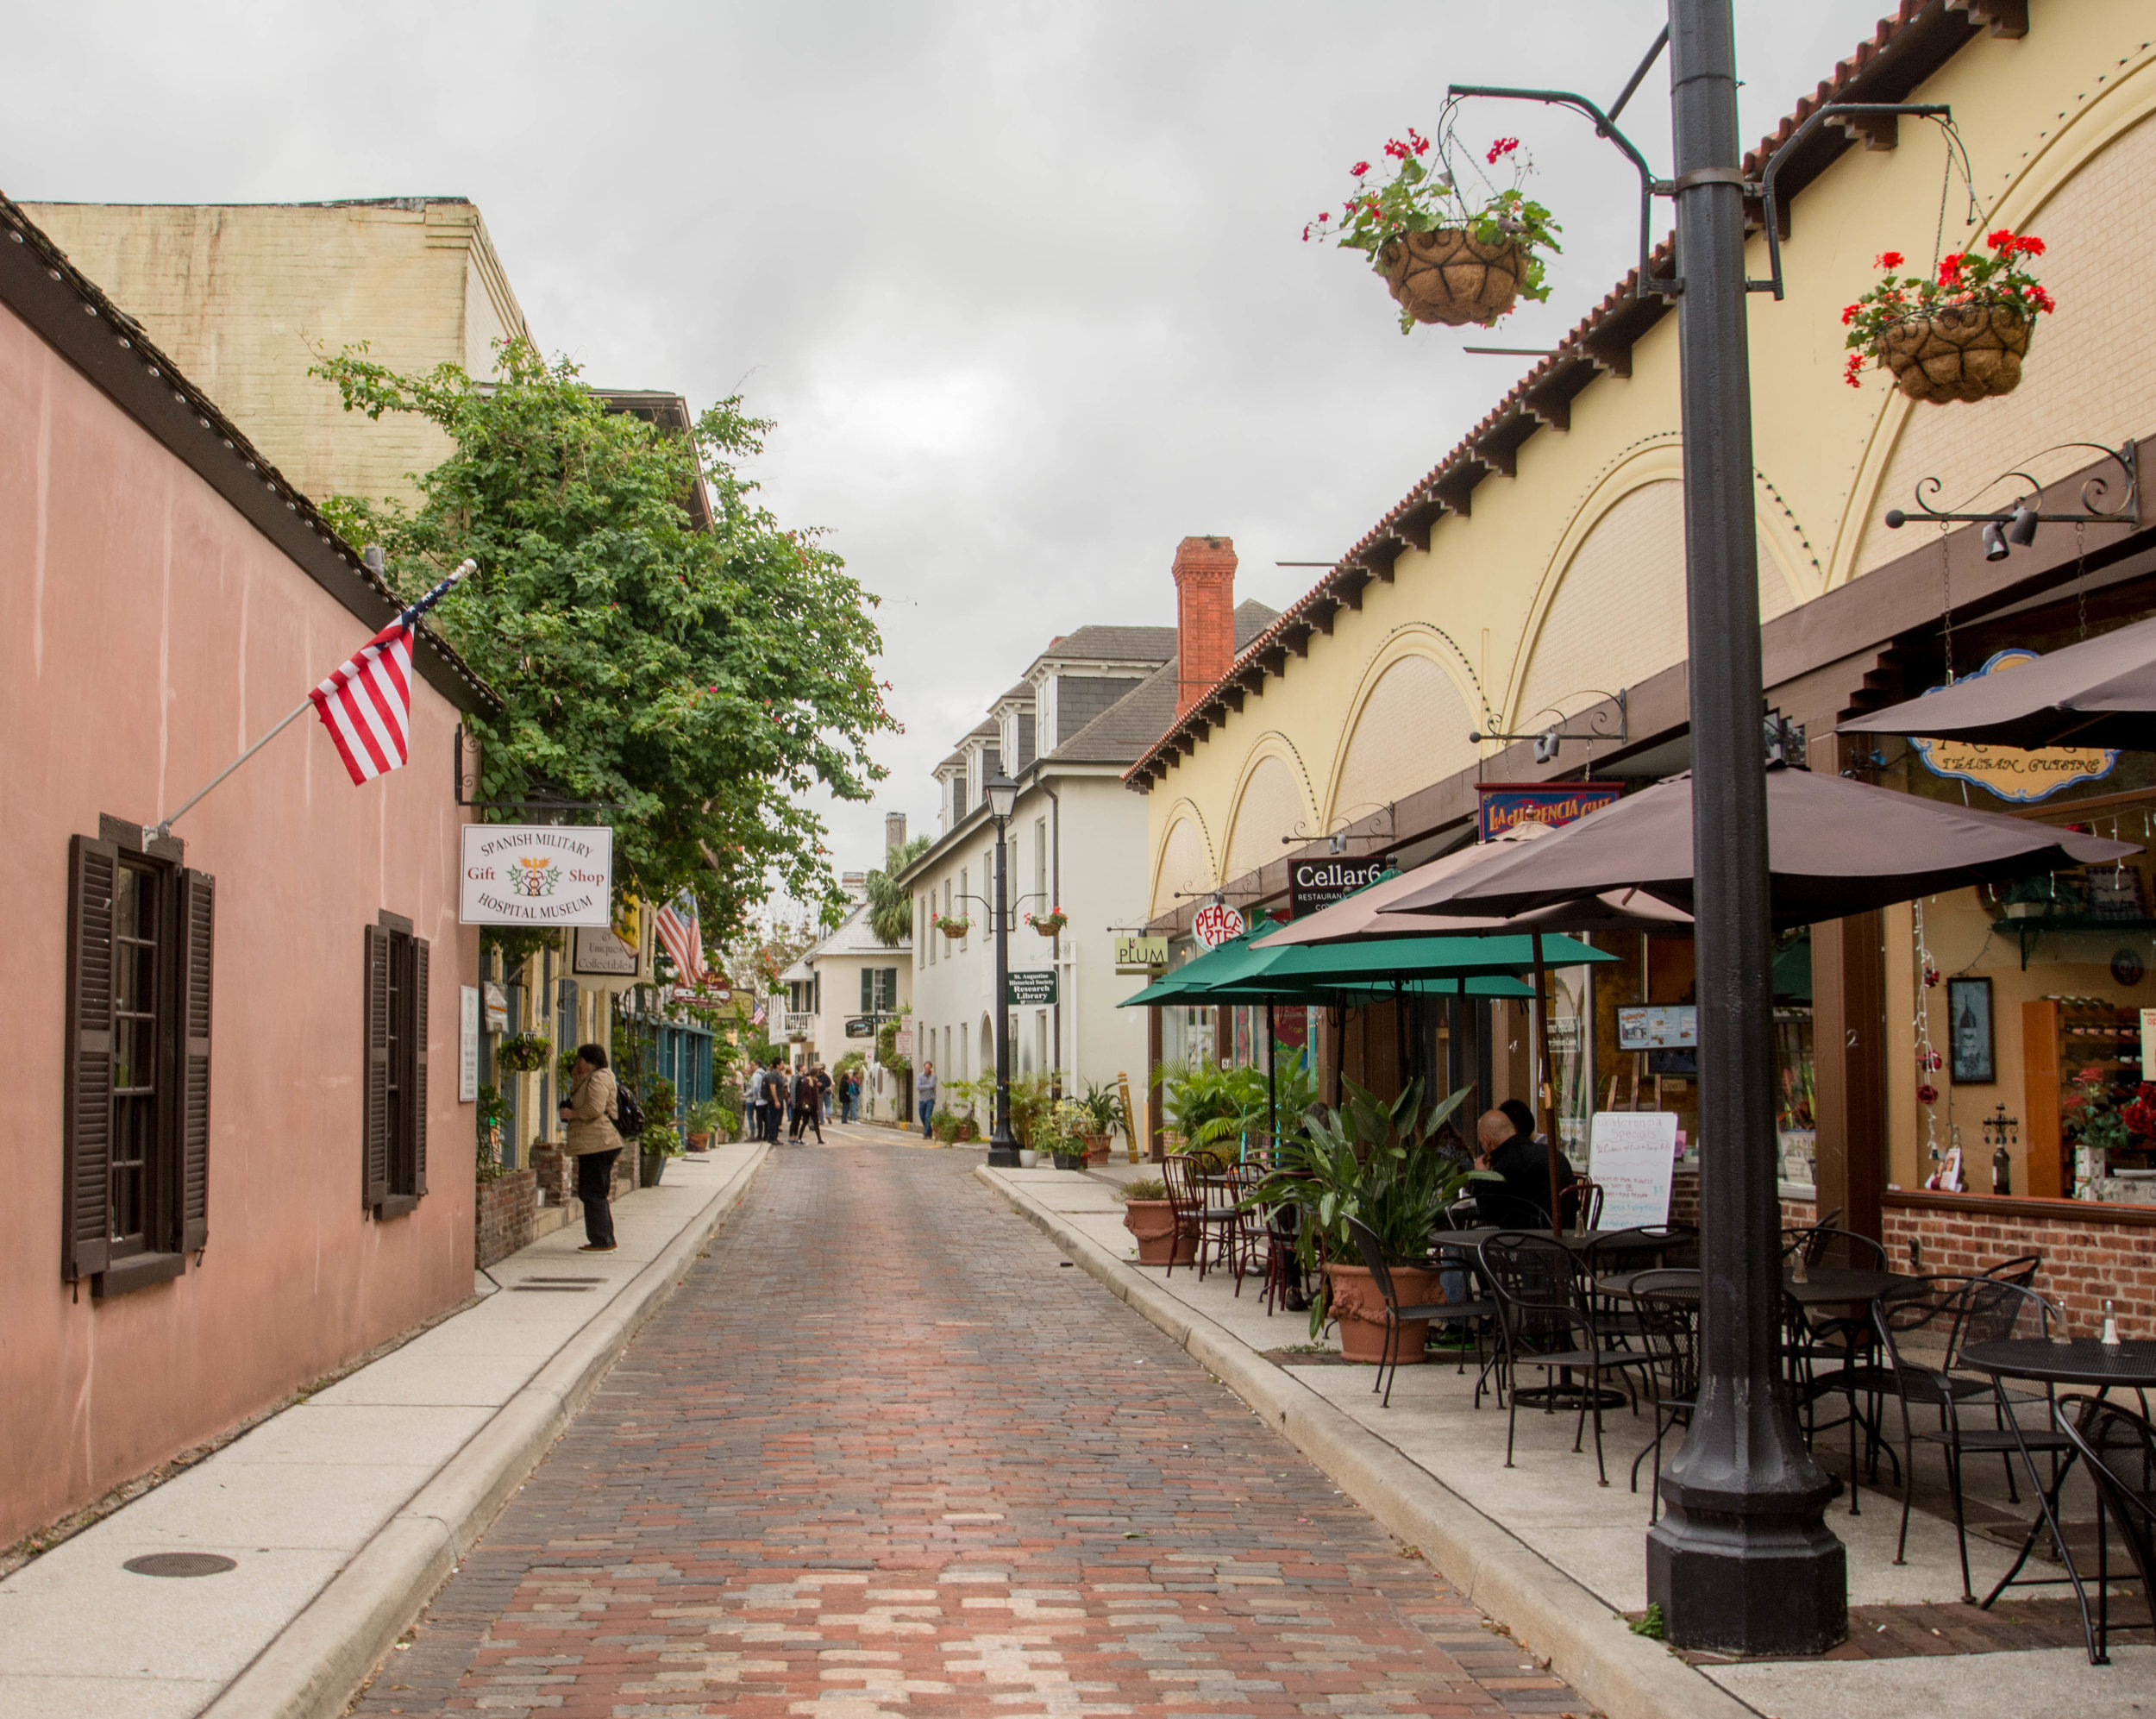 A stark contrast to State Road A1A, the streets in St. Augustine's historic center boast greenery, sidewalk cafes, brick roads, and ample shops.